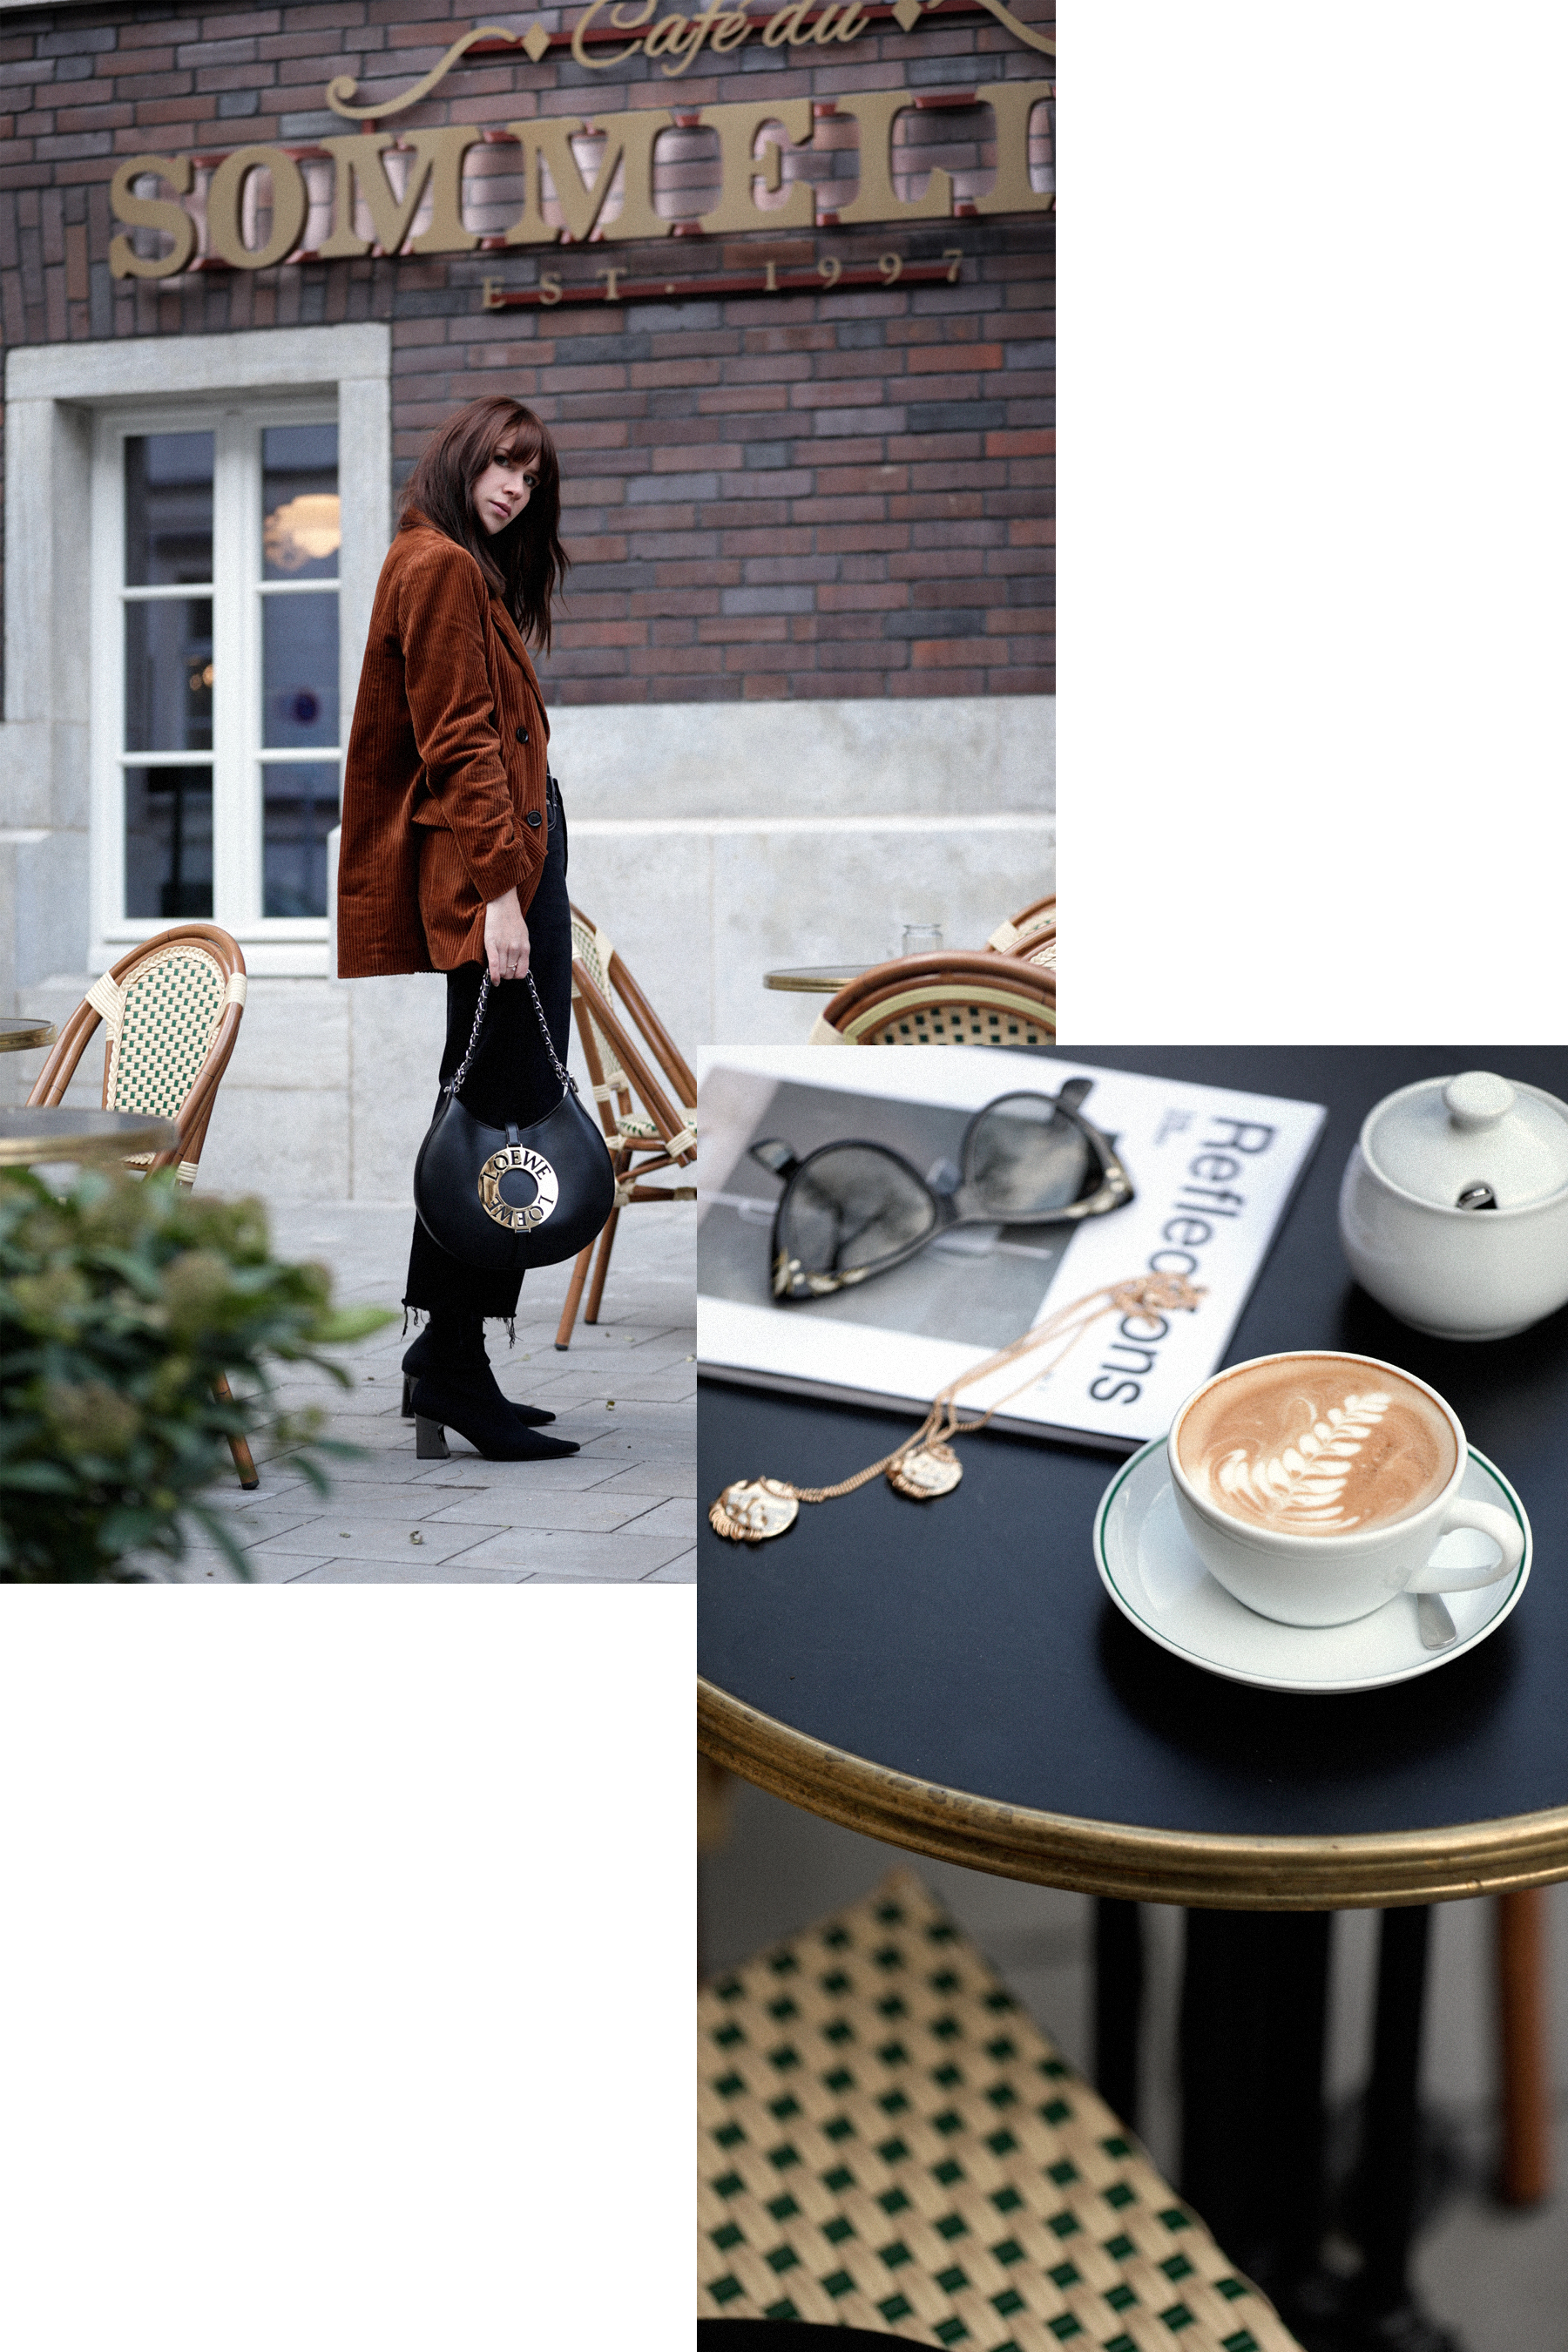 outfit brown cord cognac blazer jacket loewe joyce bag parisian cafe parisienne paris chic louis poulsen gucci sunglasses sock boots styling catsanddogsblog ricarda schernus modeblogger fashionblog düsseldorf max bechmann fotograf film 7